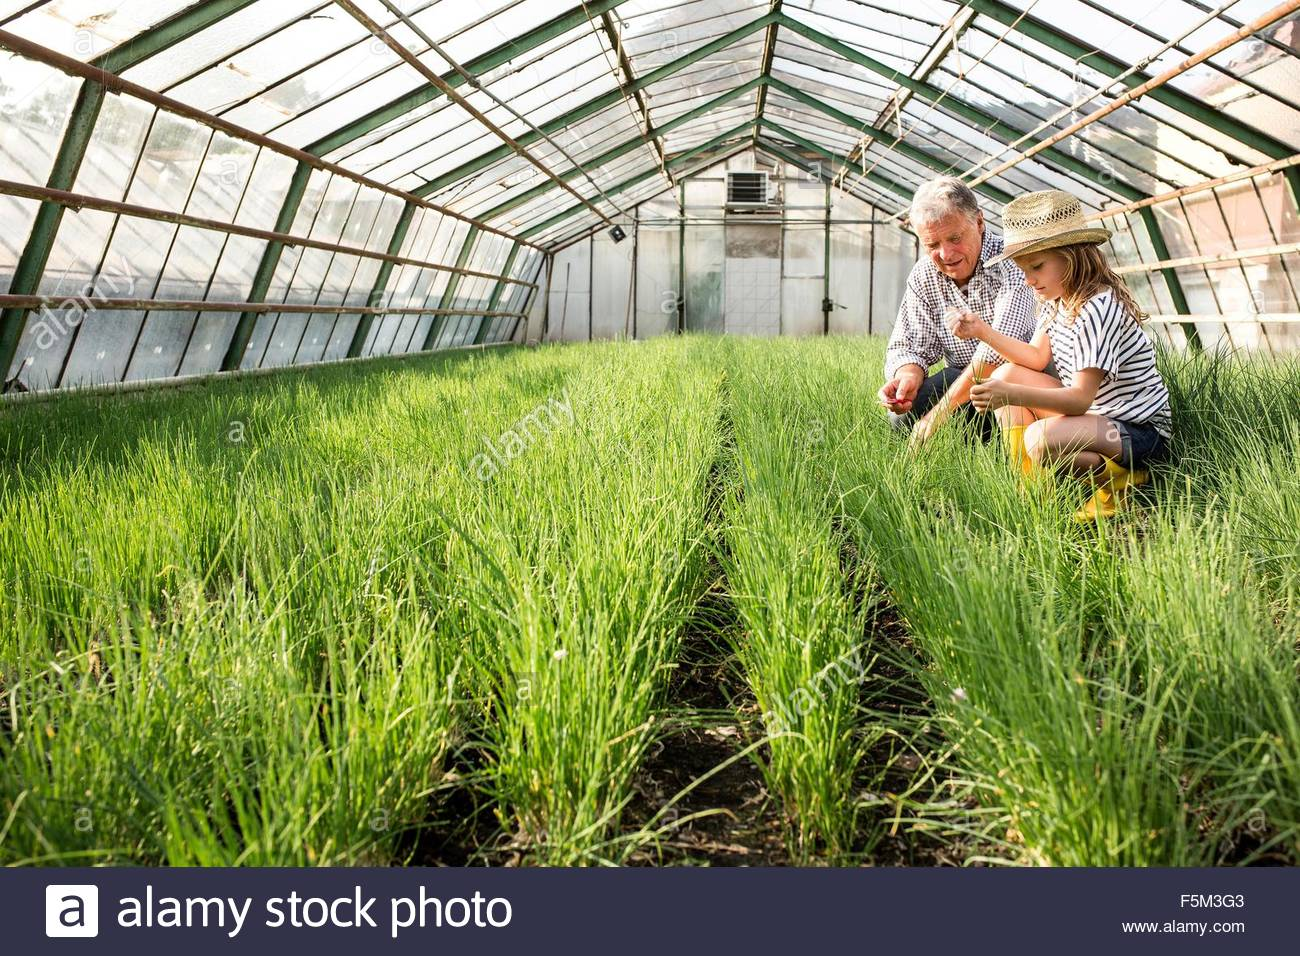 Grandfather and granddaughter in hothouse checking quality of chive plants - Stock Image